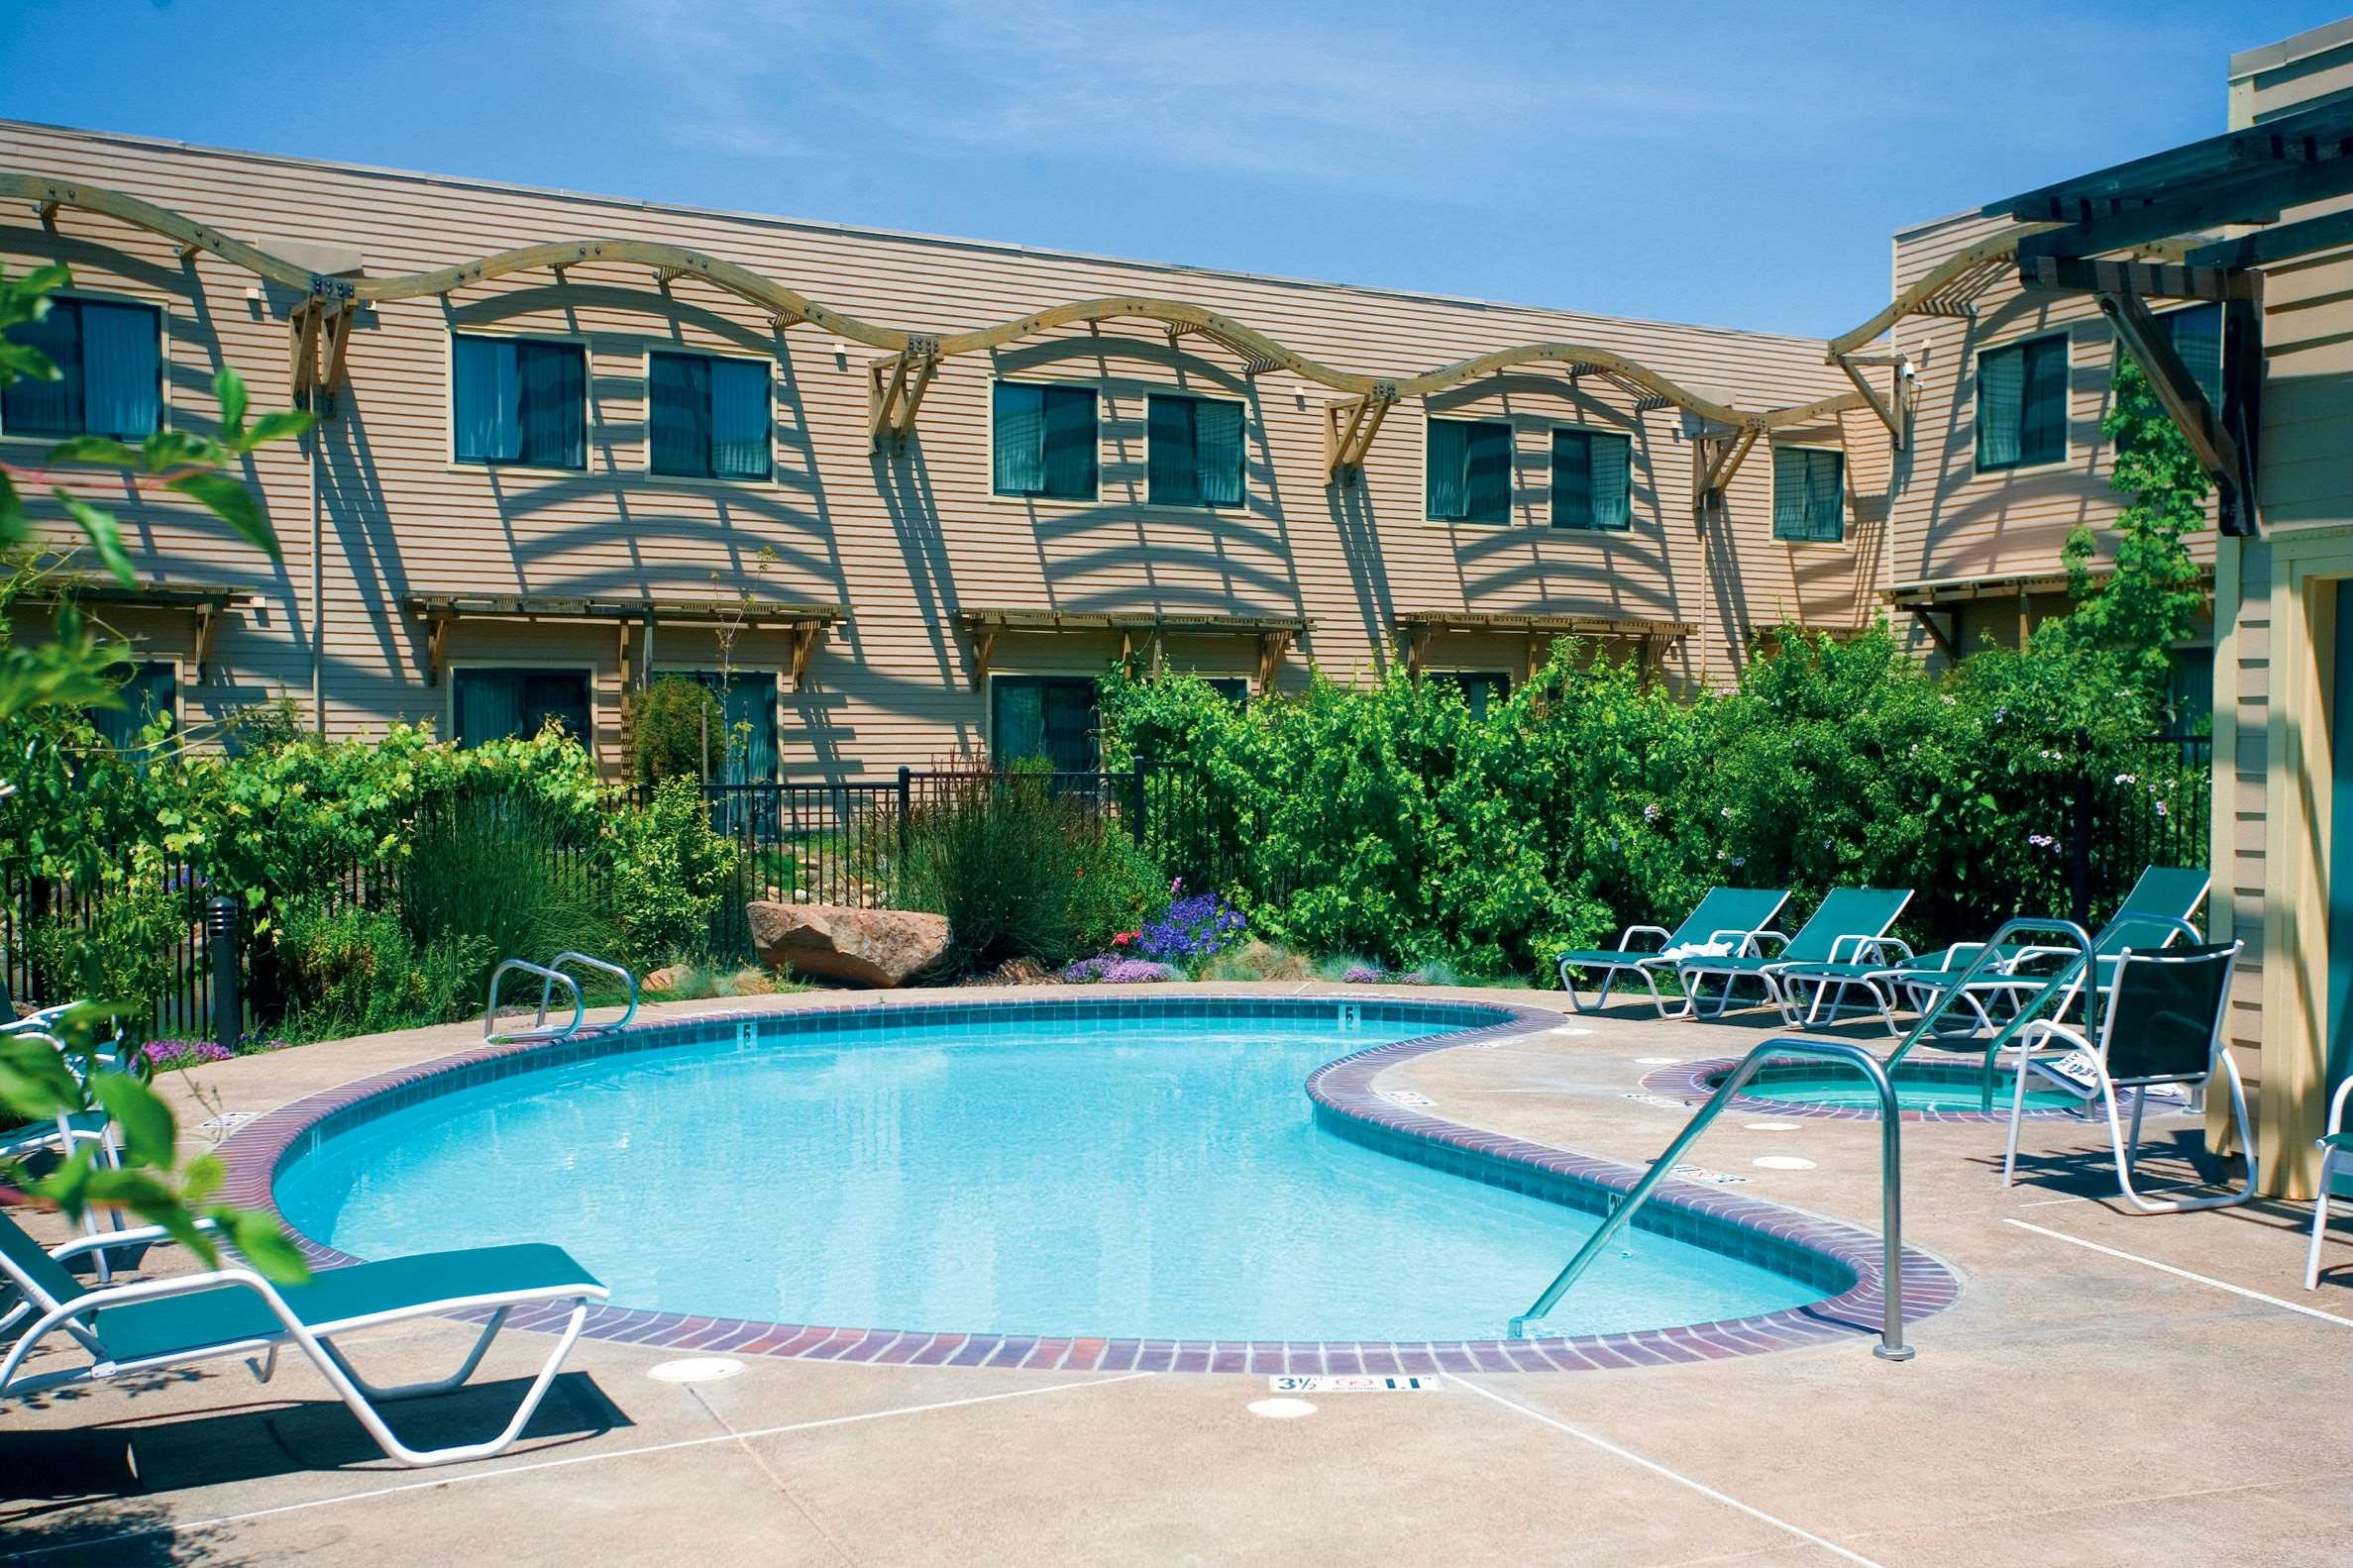 DoubleTree by Hilton Hotel & Spa Napa Valley - American Canyon image 3